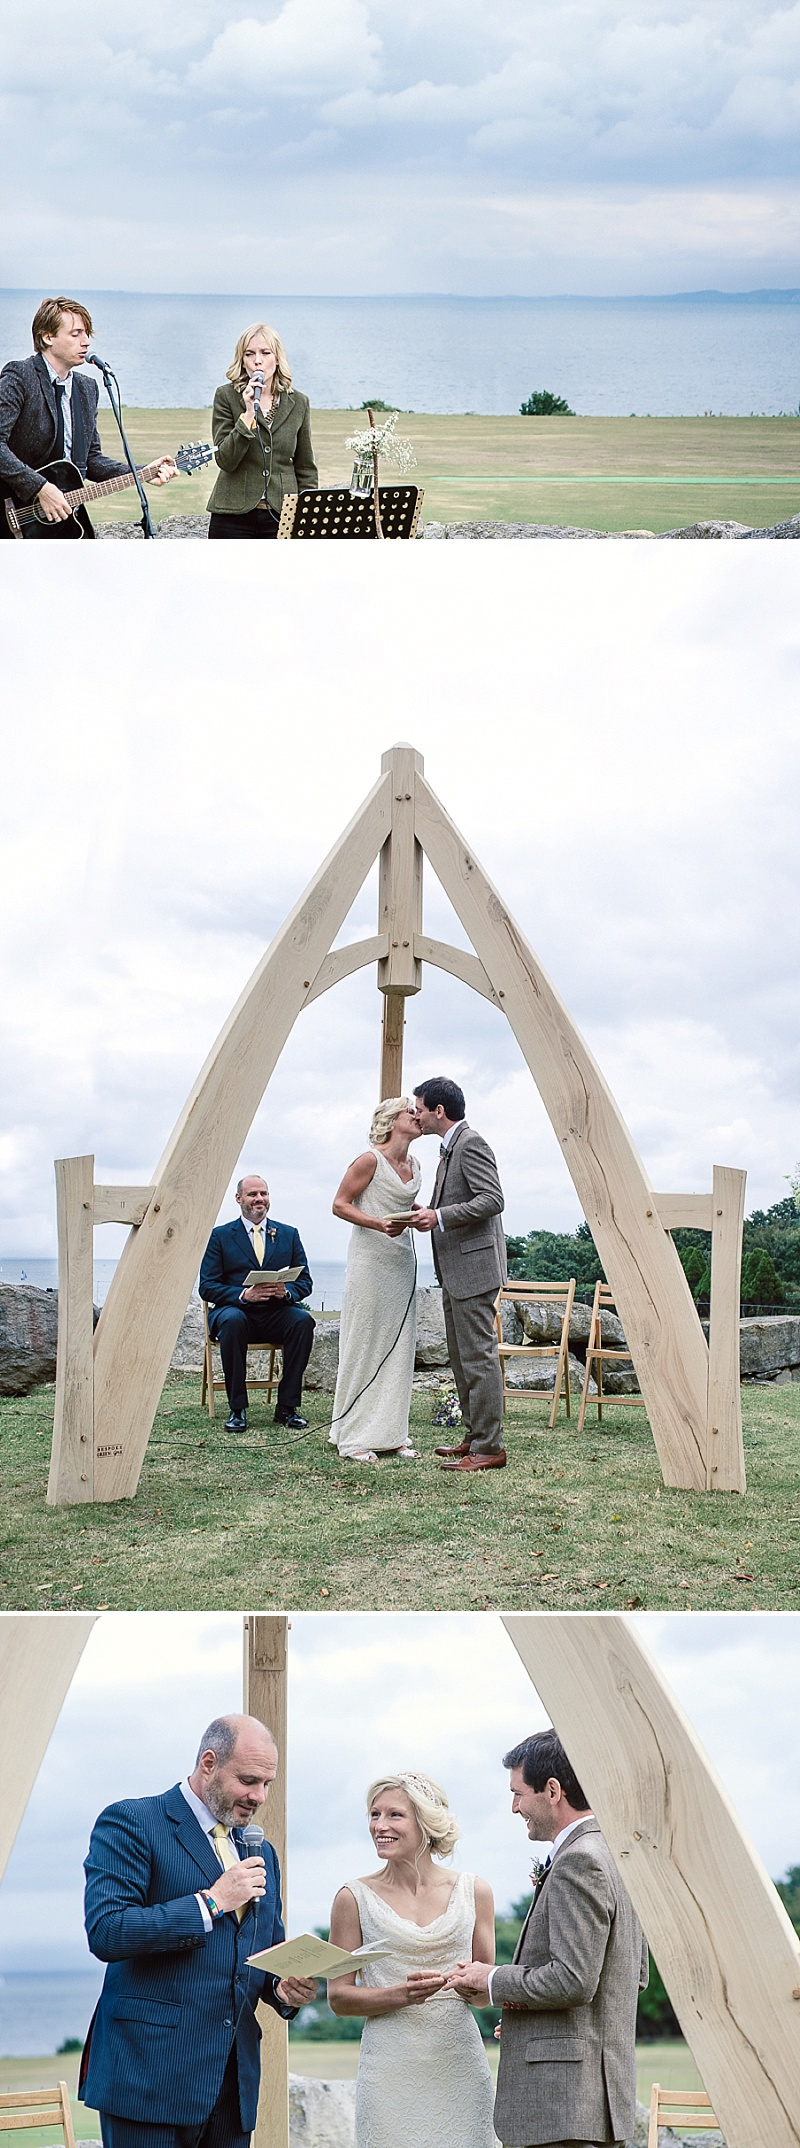 Rustic Wedding At Studland Bay House In Dorset With Bride In Charlie Brear With Hermione Harbutt Accessories And Groom In Victor Valentine Suit With Bridesmaids In French Connection 4